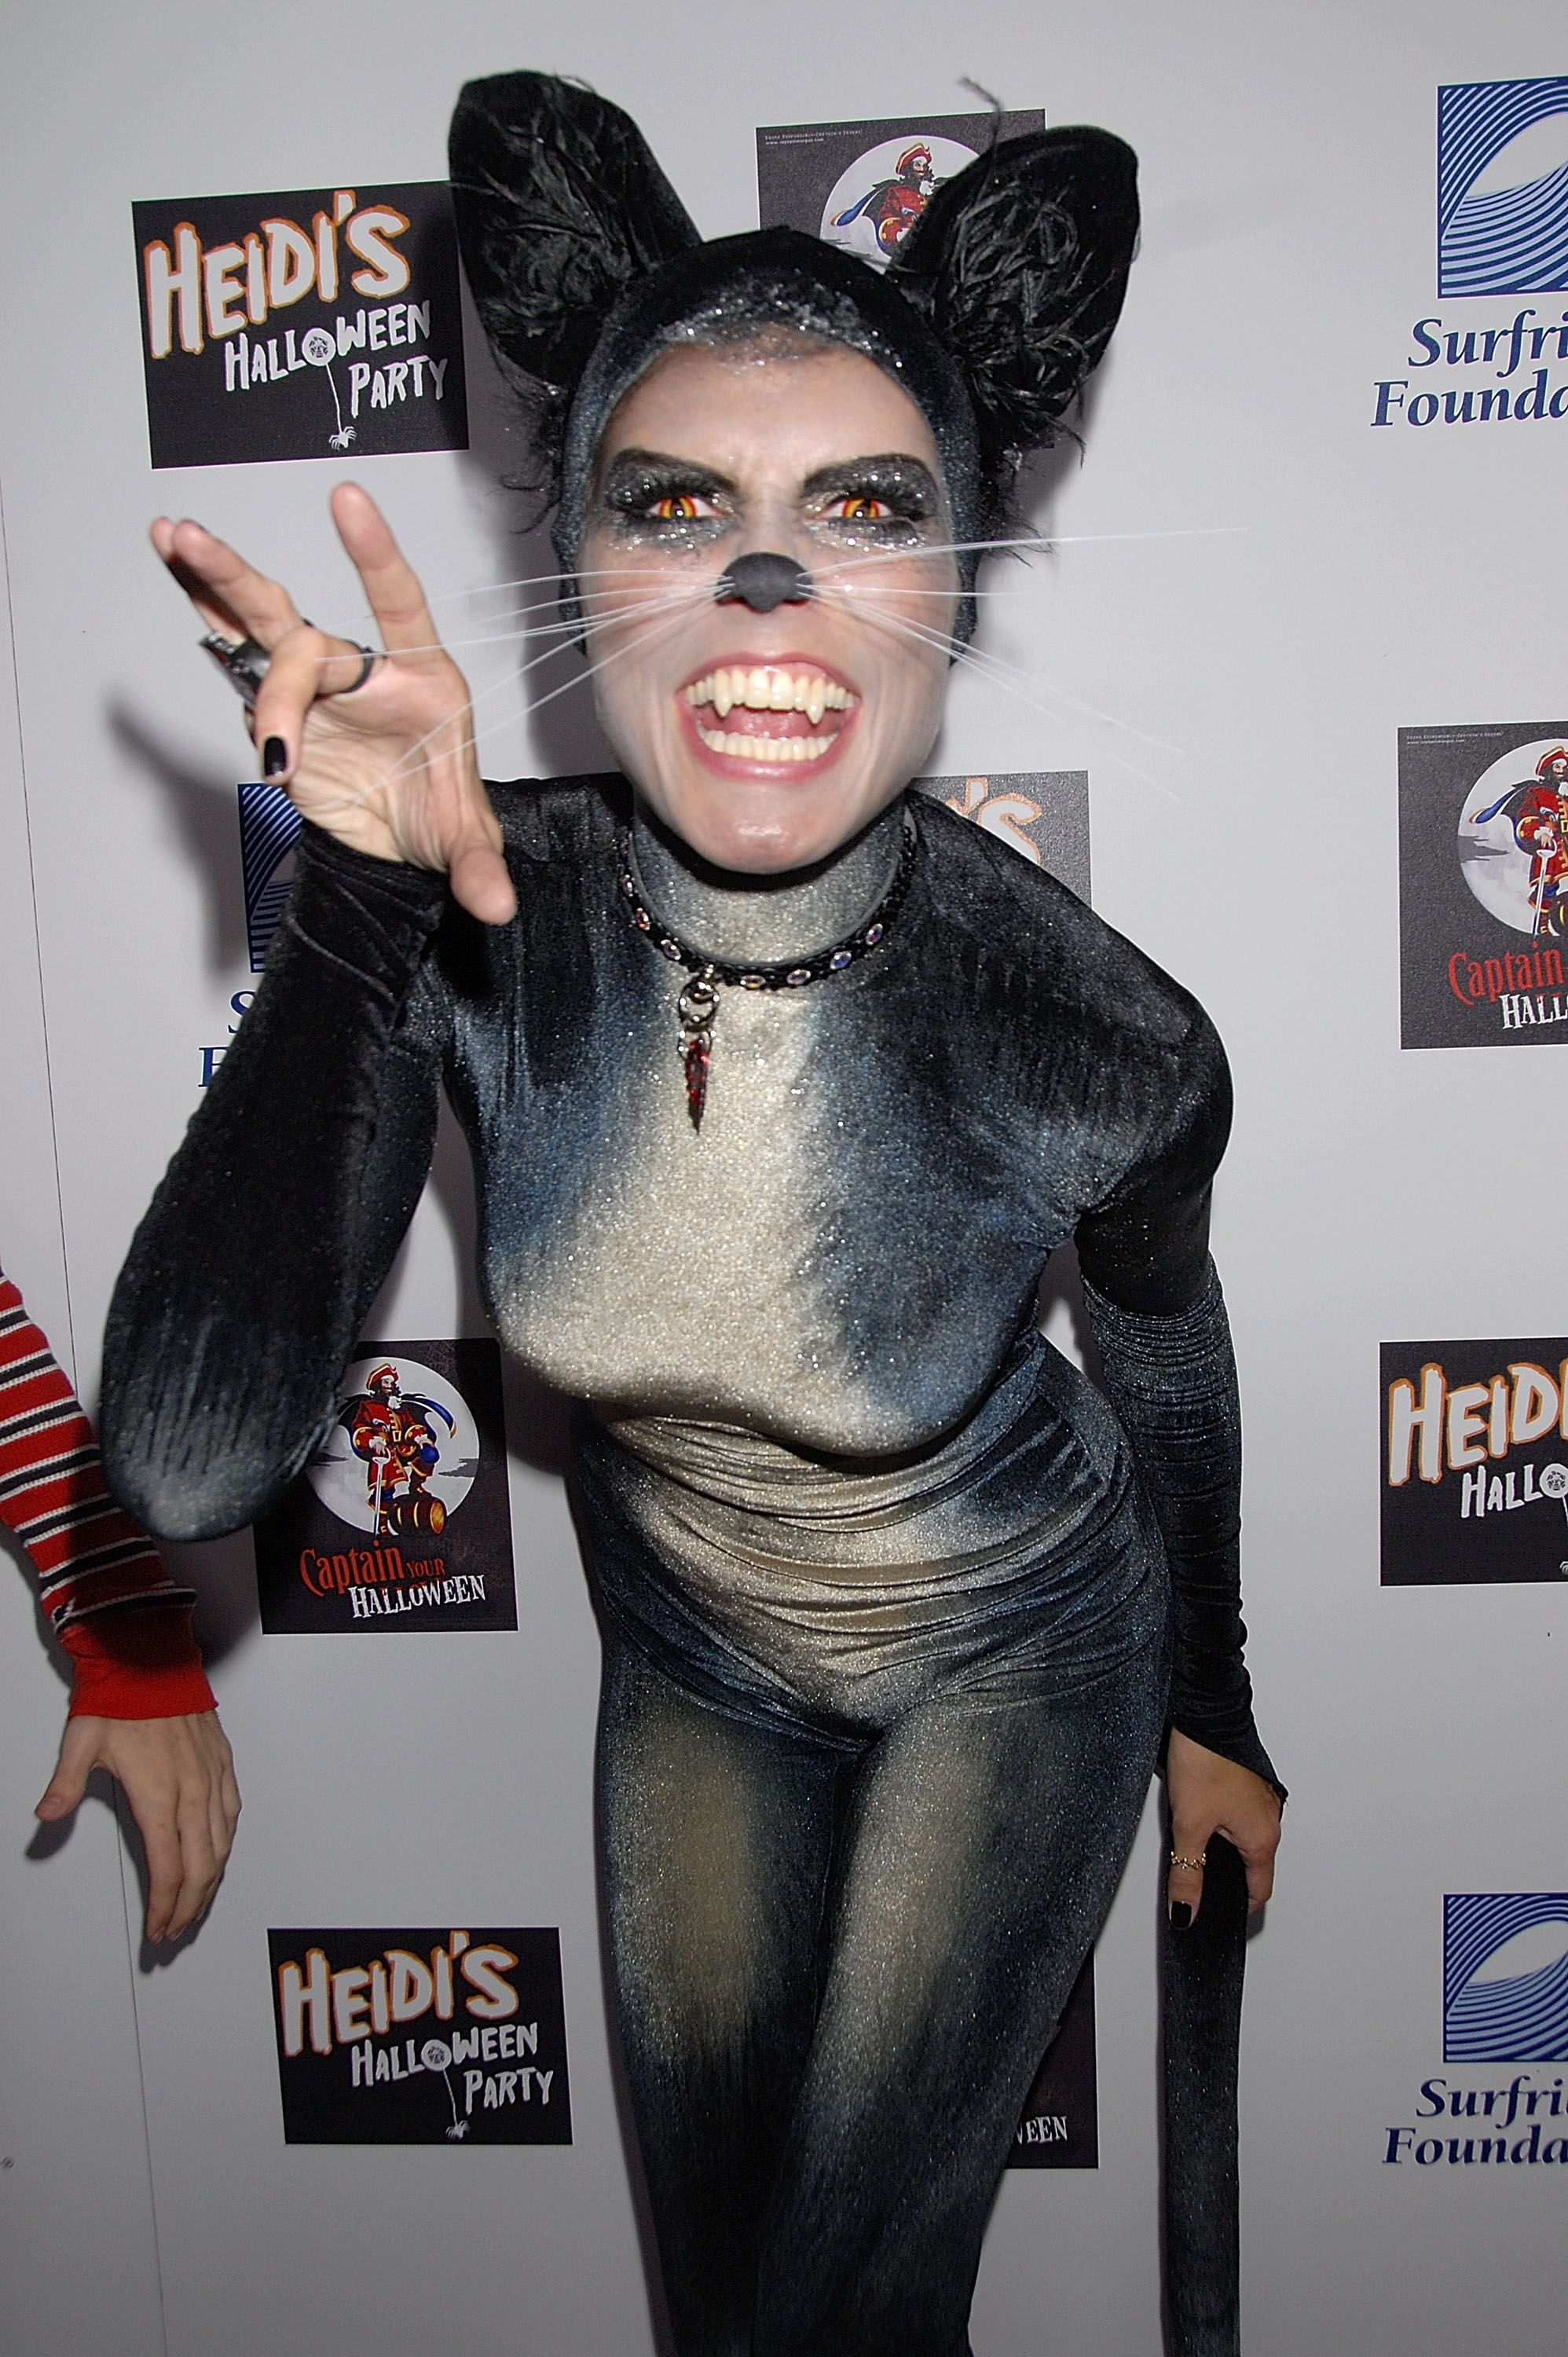 LOS ANGELES, CA - OCTOBER 31: Model Heidi Klum attends her 8th Annual Halloween Party at The Green Door on October 31, 2007 in Los Angeles, California. (Photo by Charley Gallay/Getty Images) ORG XMIT: 77459456 GTY ID: 59456CG001_HEIDI_KLUM_S_